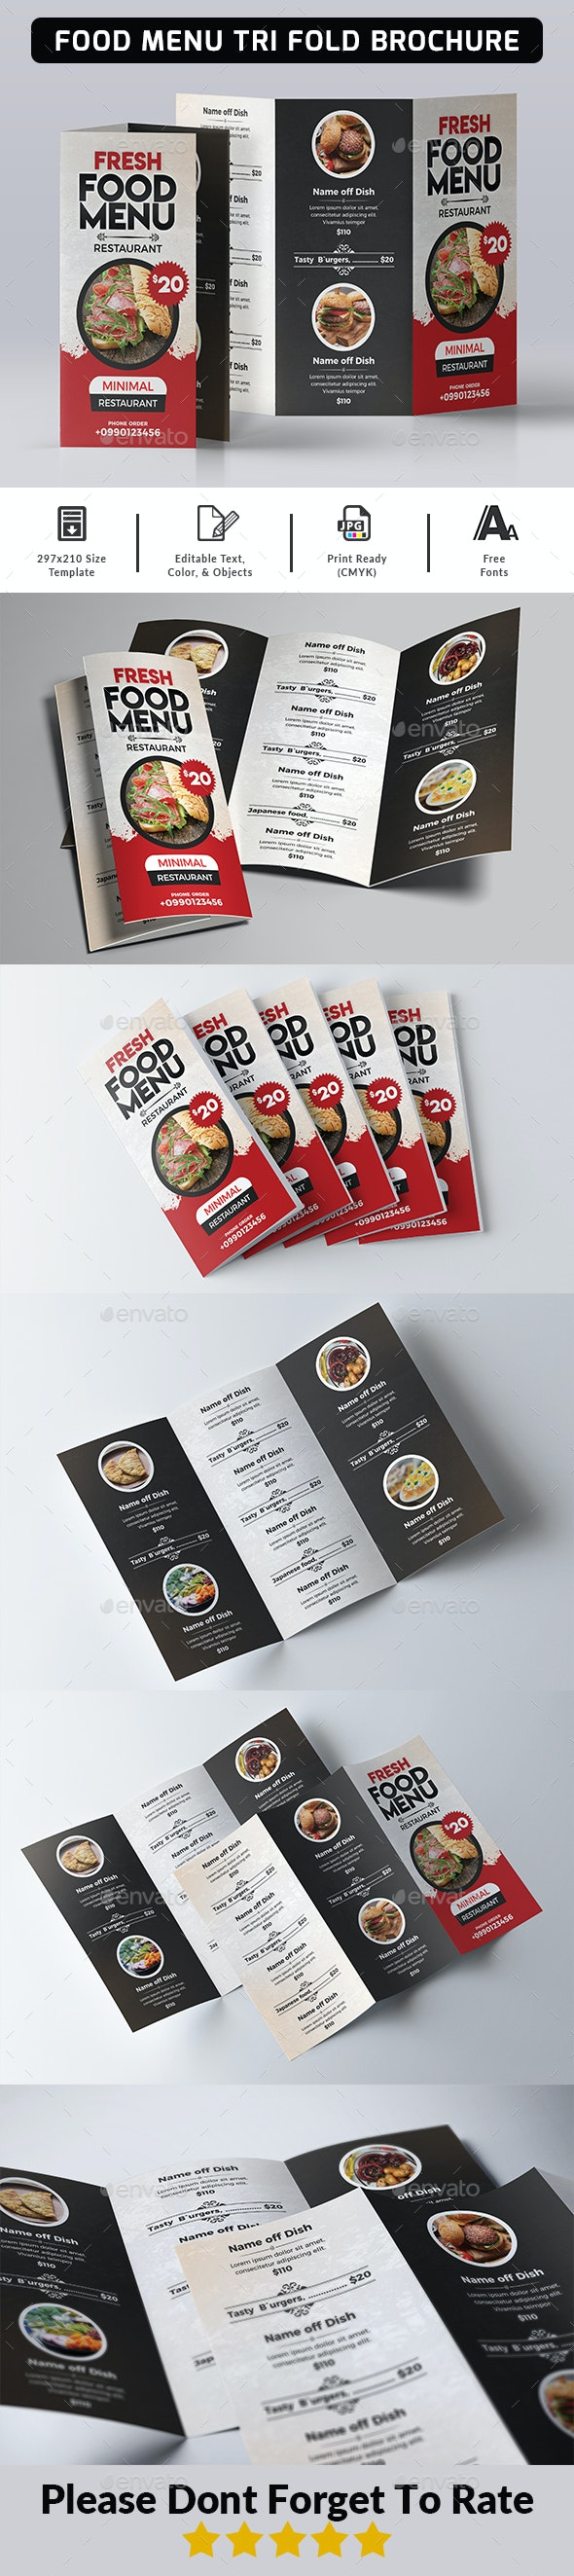 Food Menu Tri Fold Brochure - Food Menus Print Templates